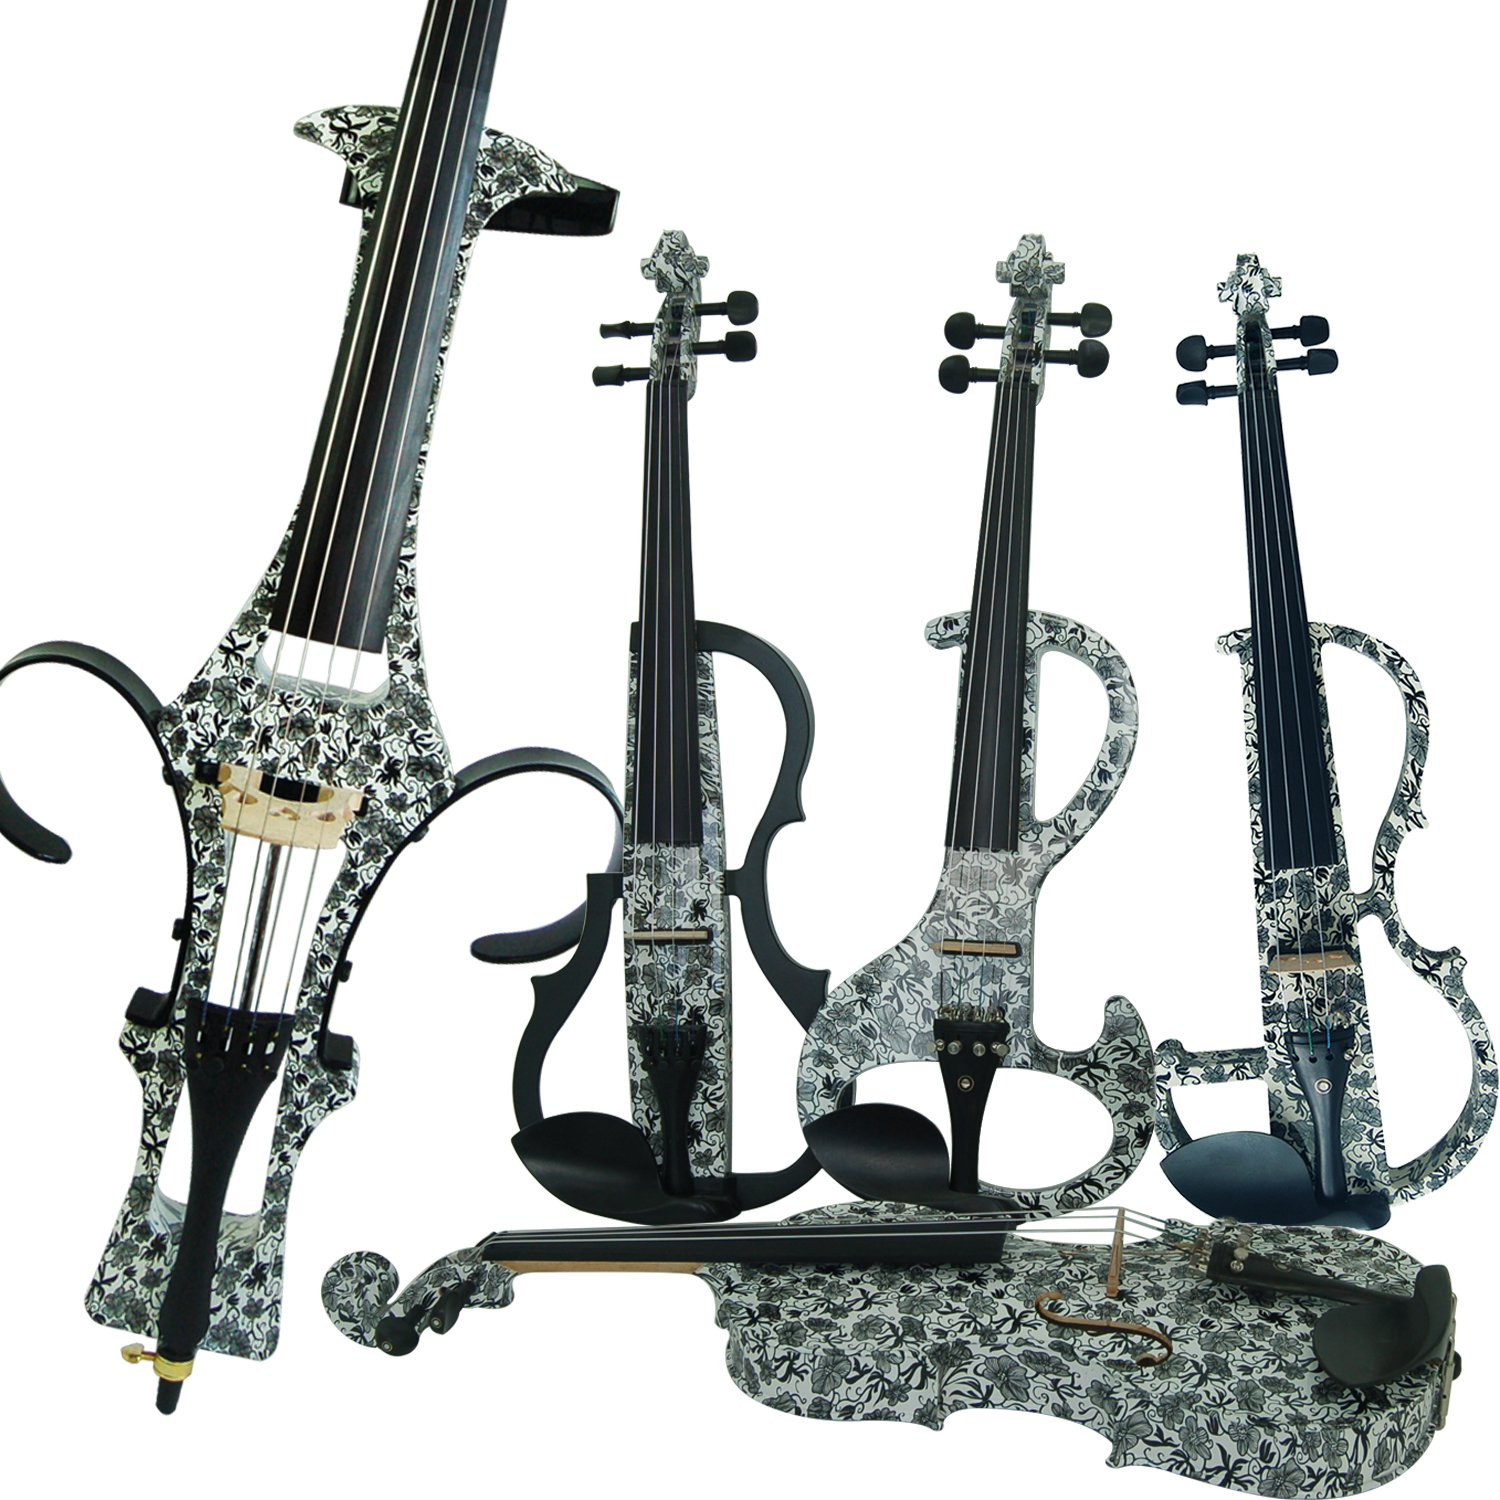 Leeche Premium 4/4 Full Size Solid Wood Electric Cello Violoncello Maple Solid Wood body Ebony Fittings with Bag, Bow, Rosin, Aux Cable, Earphone, Extra set of Strings(Art Black Flowers)